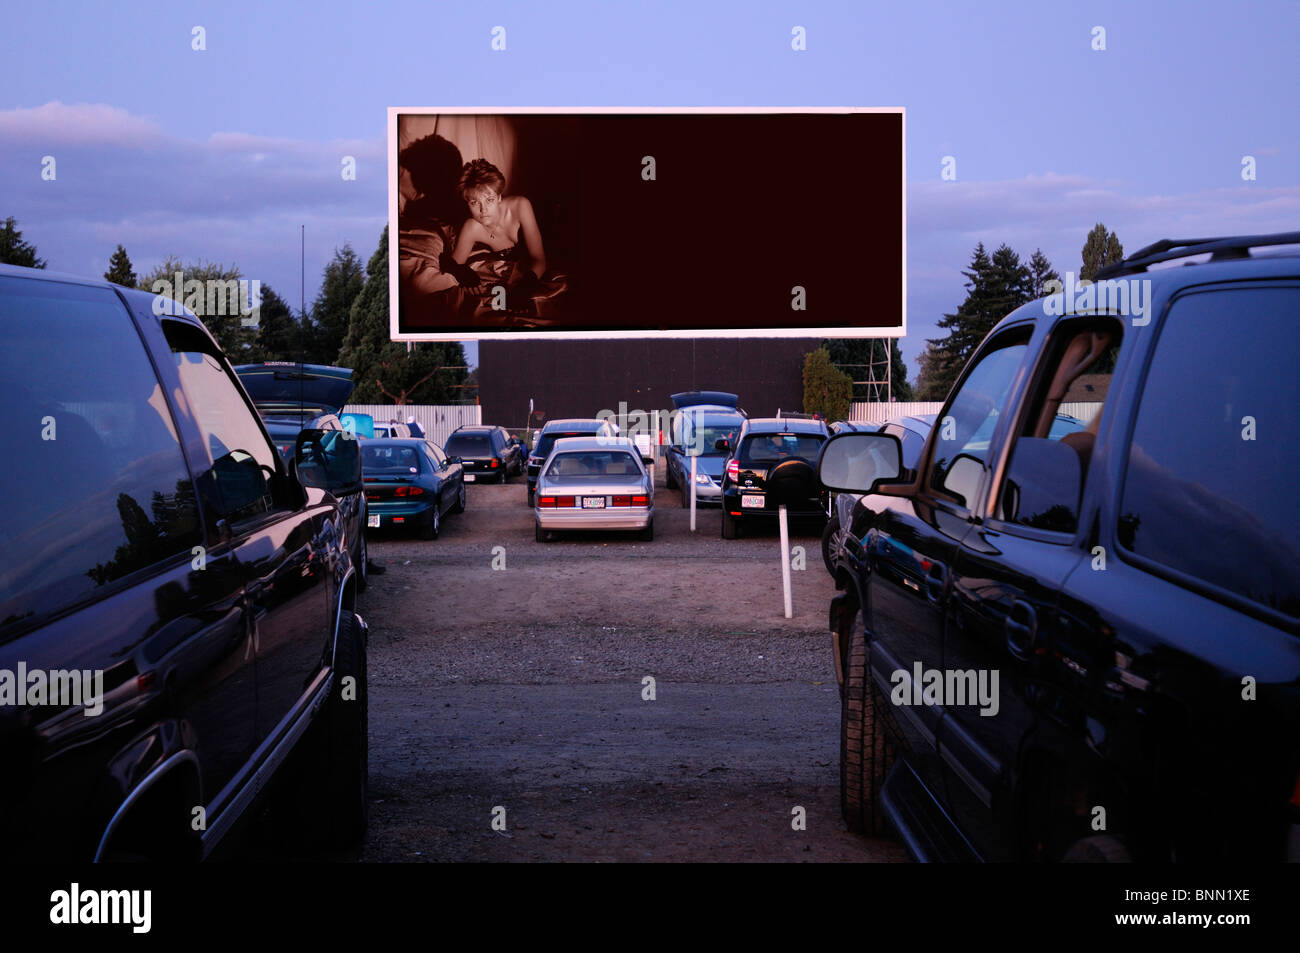 motor vu drive in dallas oregon usa cinema parking cars